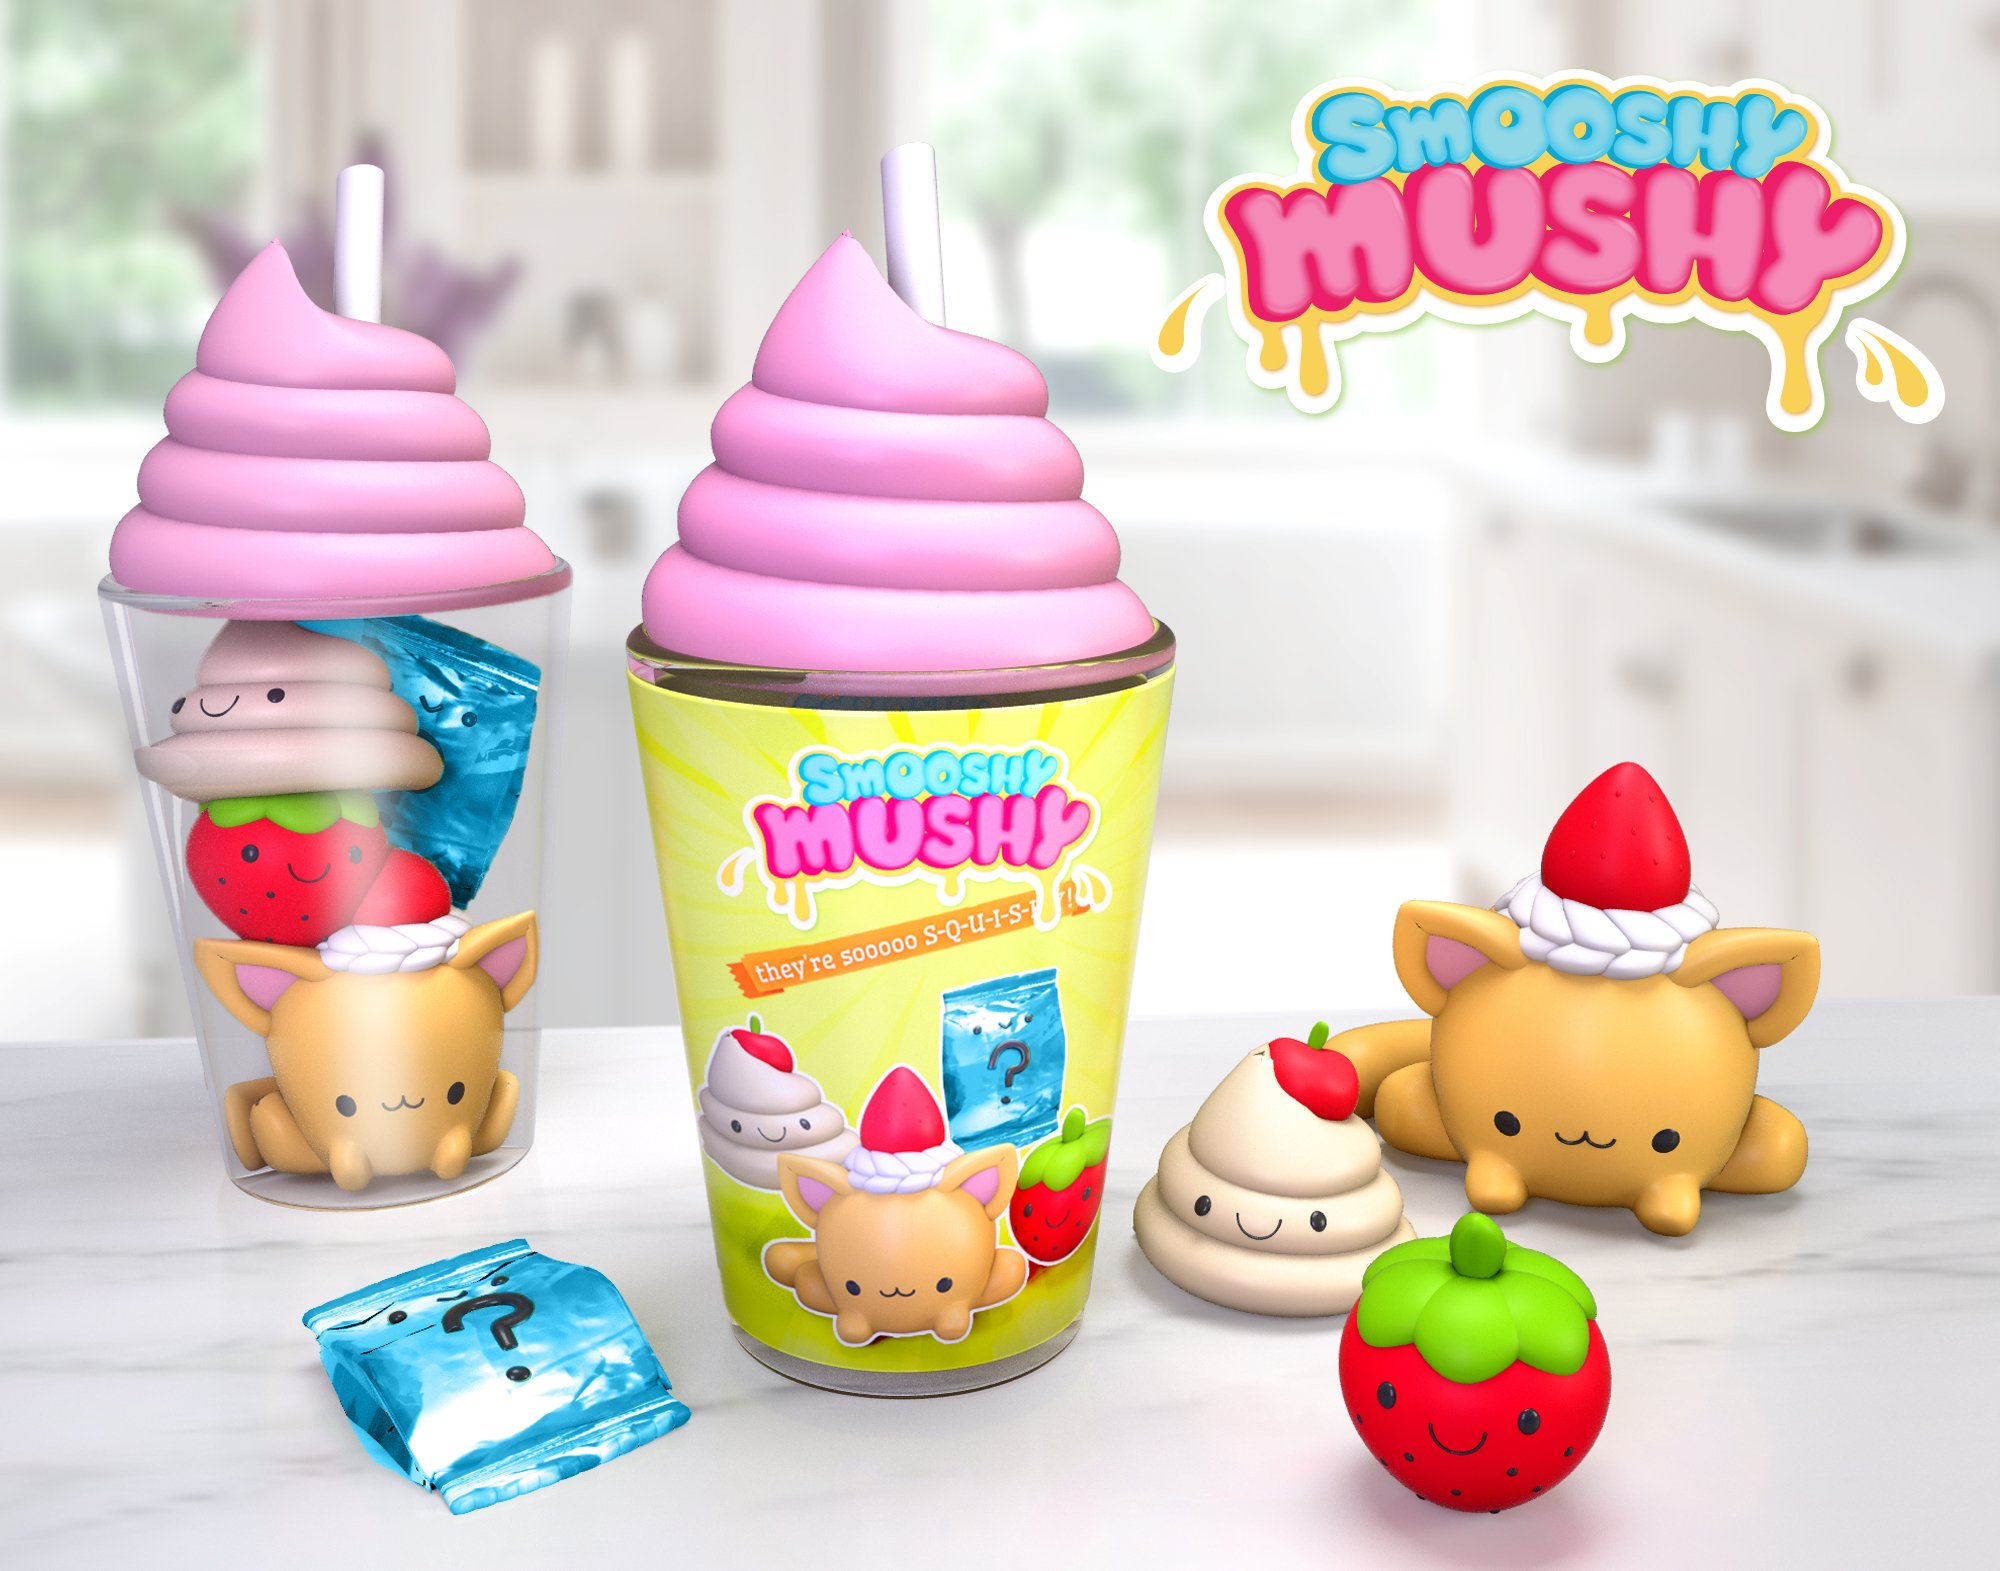 Smooshy Mushy Creamery Series 3 : Smooshy Mushy on Twitter: